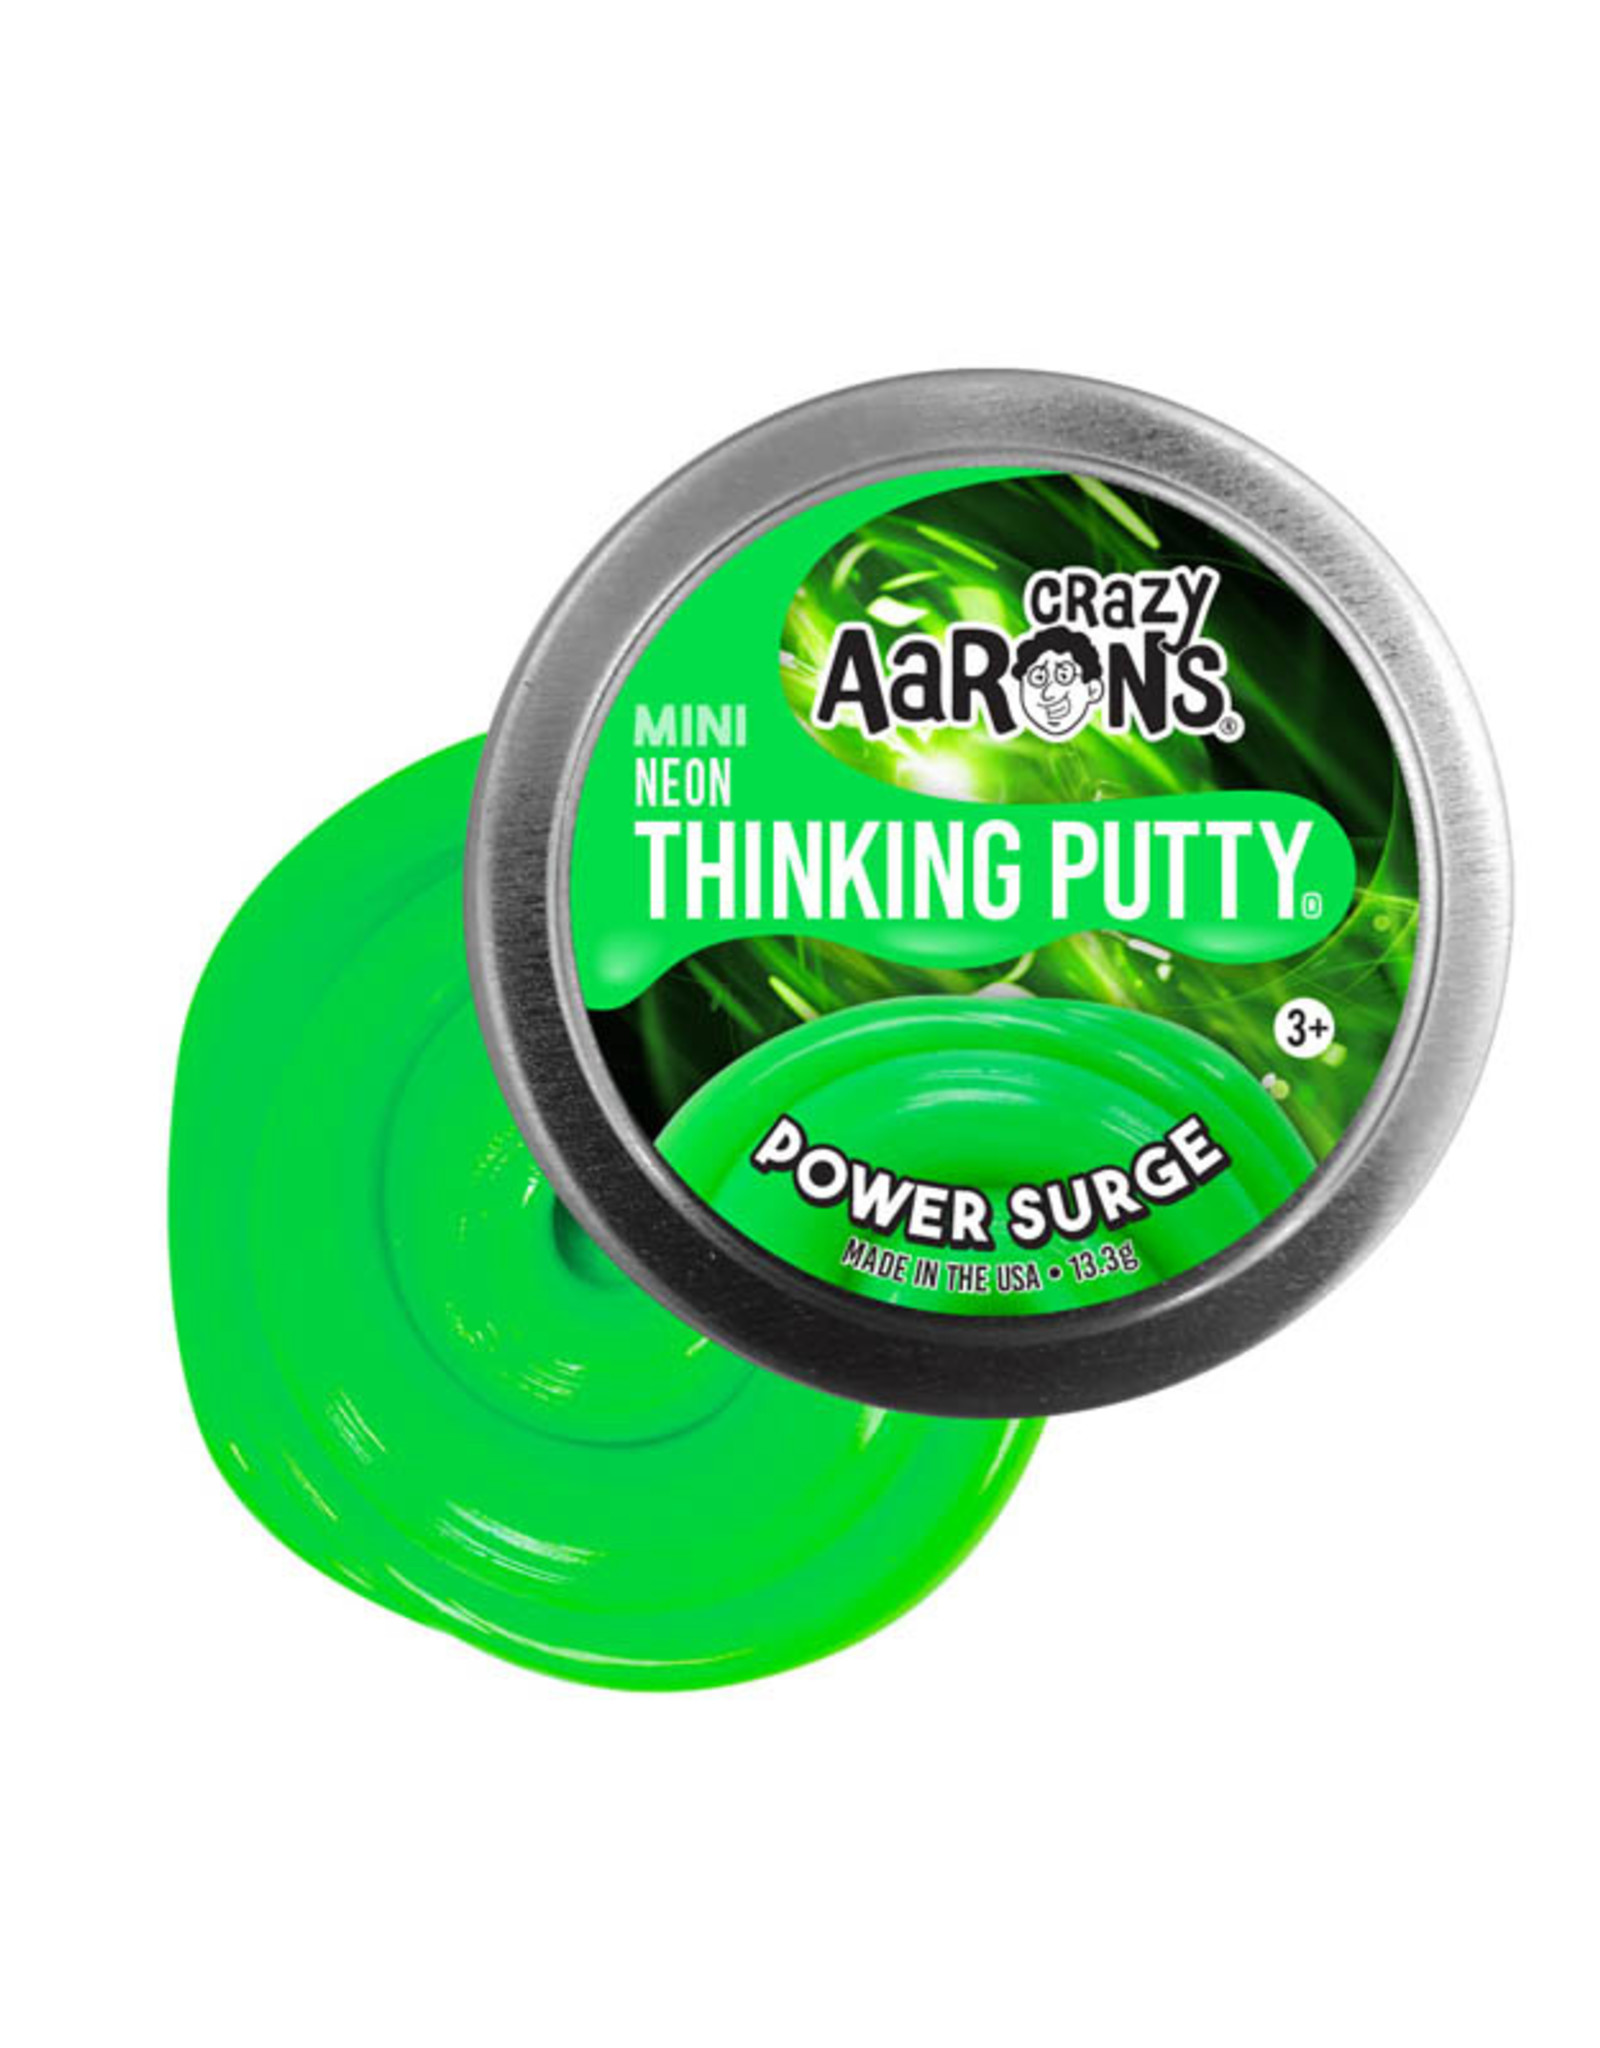 Crazy Aaron's Thinking Putty Small Tin Power Surge - Colorbrights